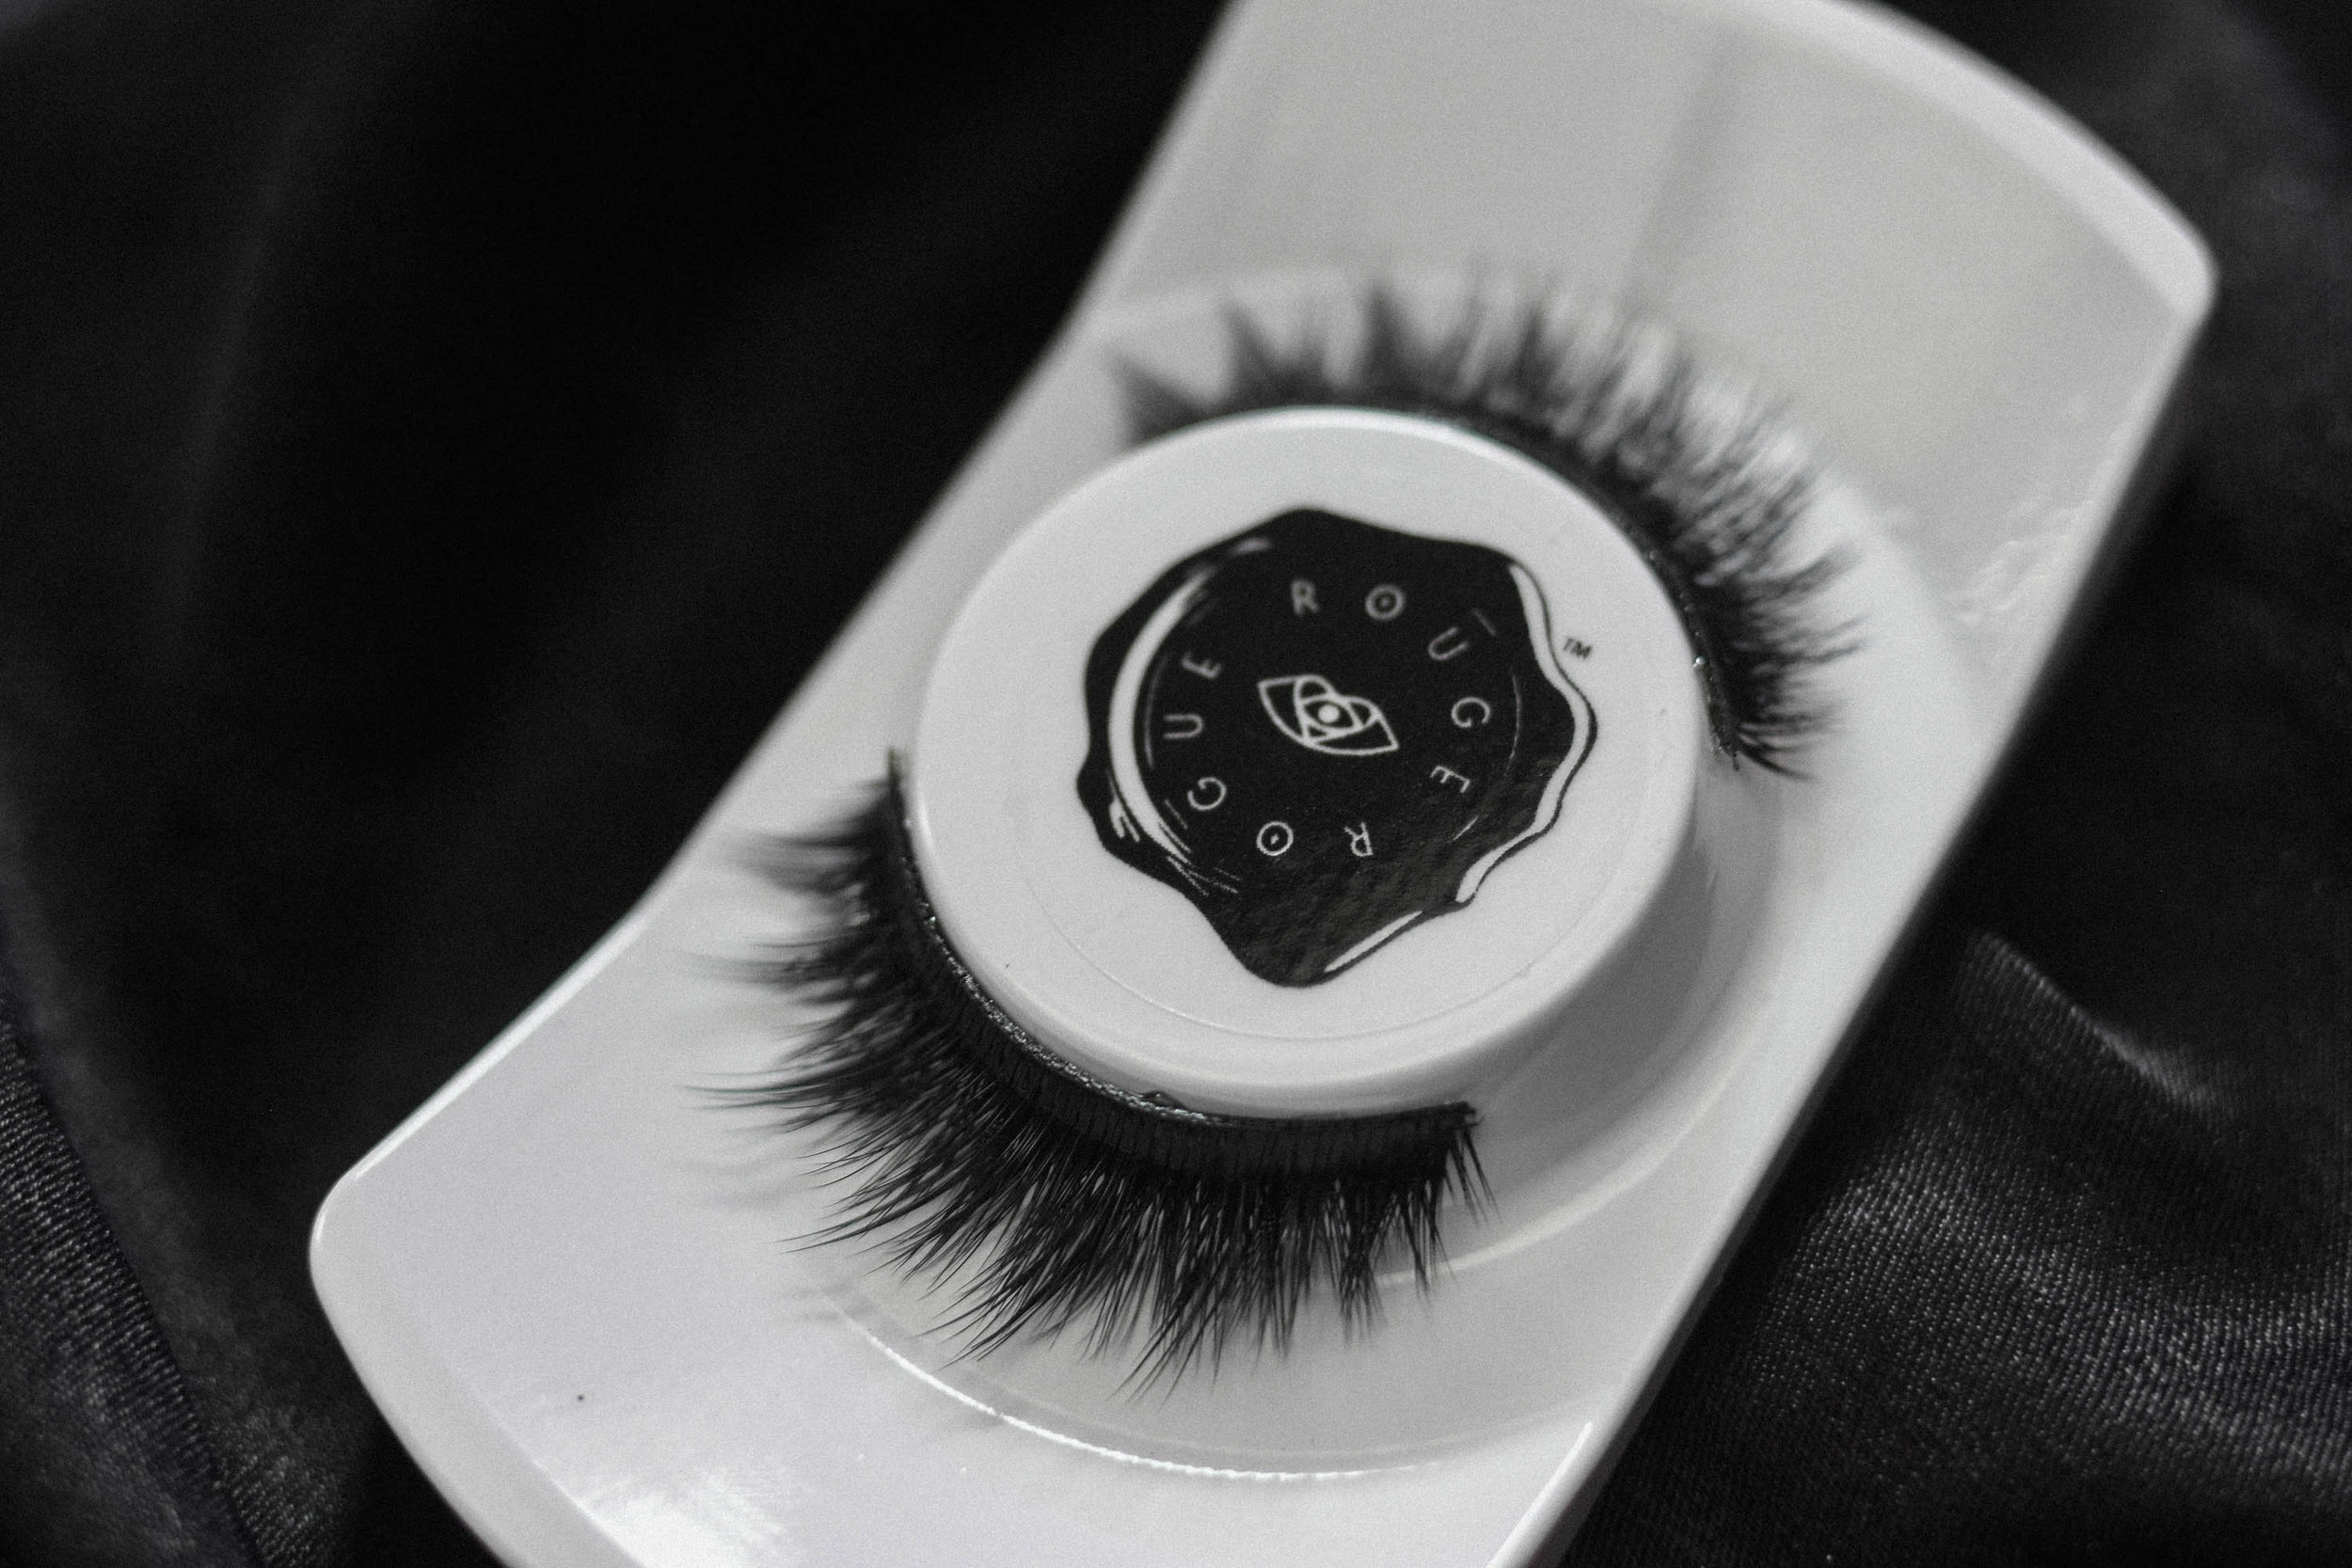 Phoenix   This lash soars above the rest! Made to mimic the wings of a Phoenix, this striking, dramatic lash will rise you to new heights. The phoenix is a symbol of rebirth- let your eyes take on new life with this dual tiered, tapered style which integrates our Infinite Volume technology ™ for the ultimate alluring stare.